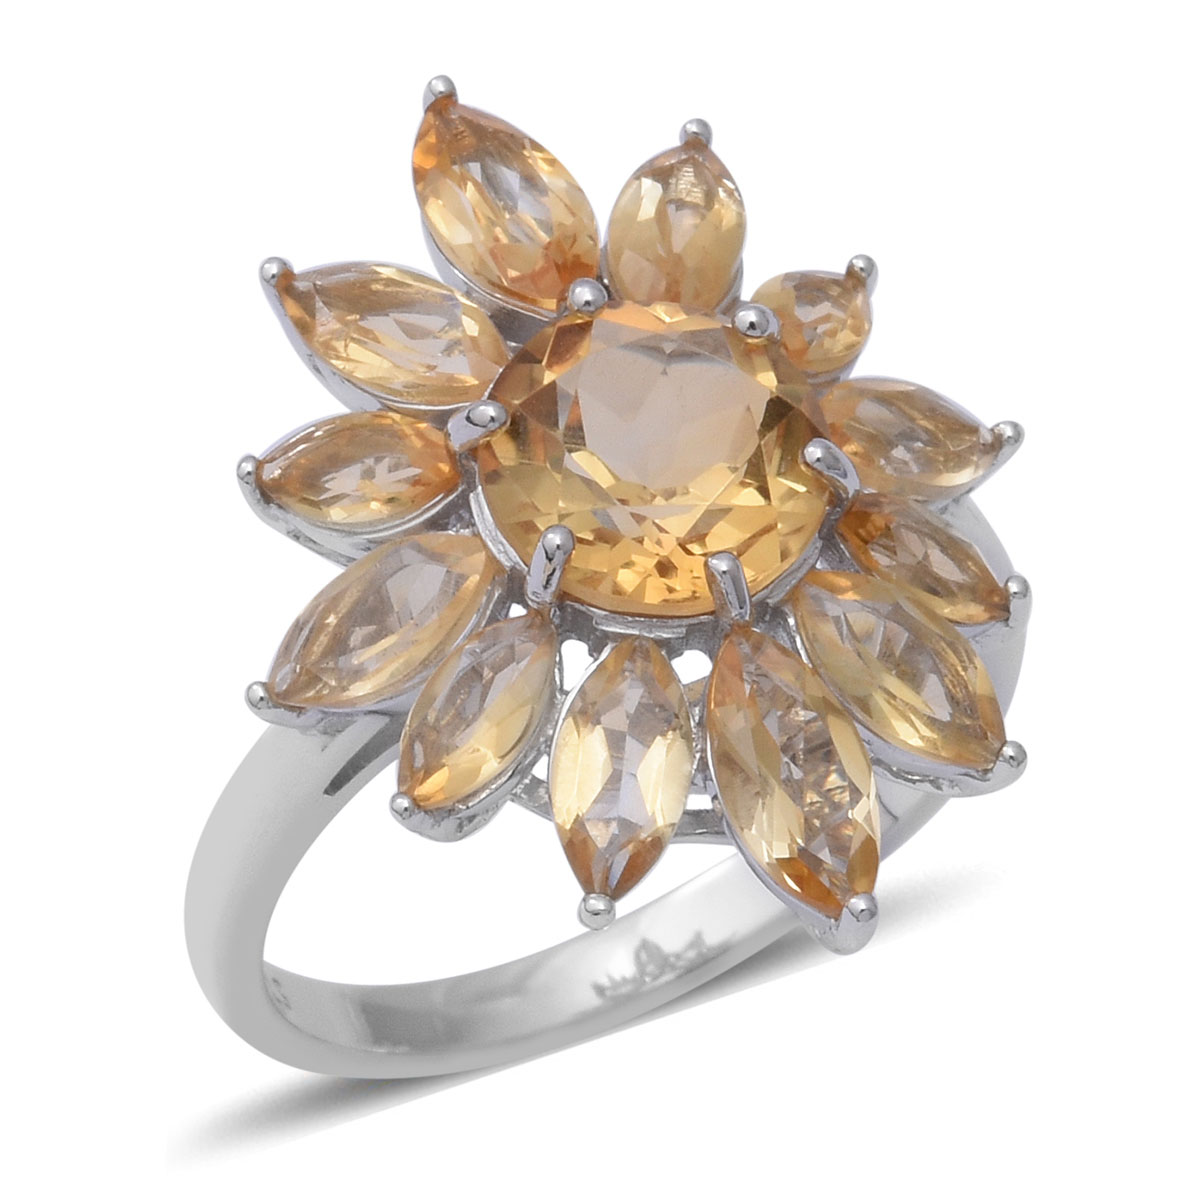 Brazilian Citrine Ring in Platinum Over Sterling Silver (Size 6.0) 6.29 ctw